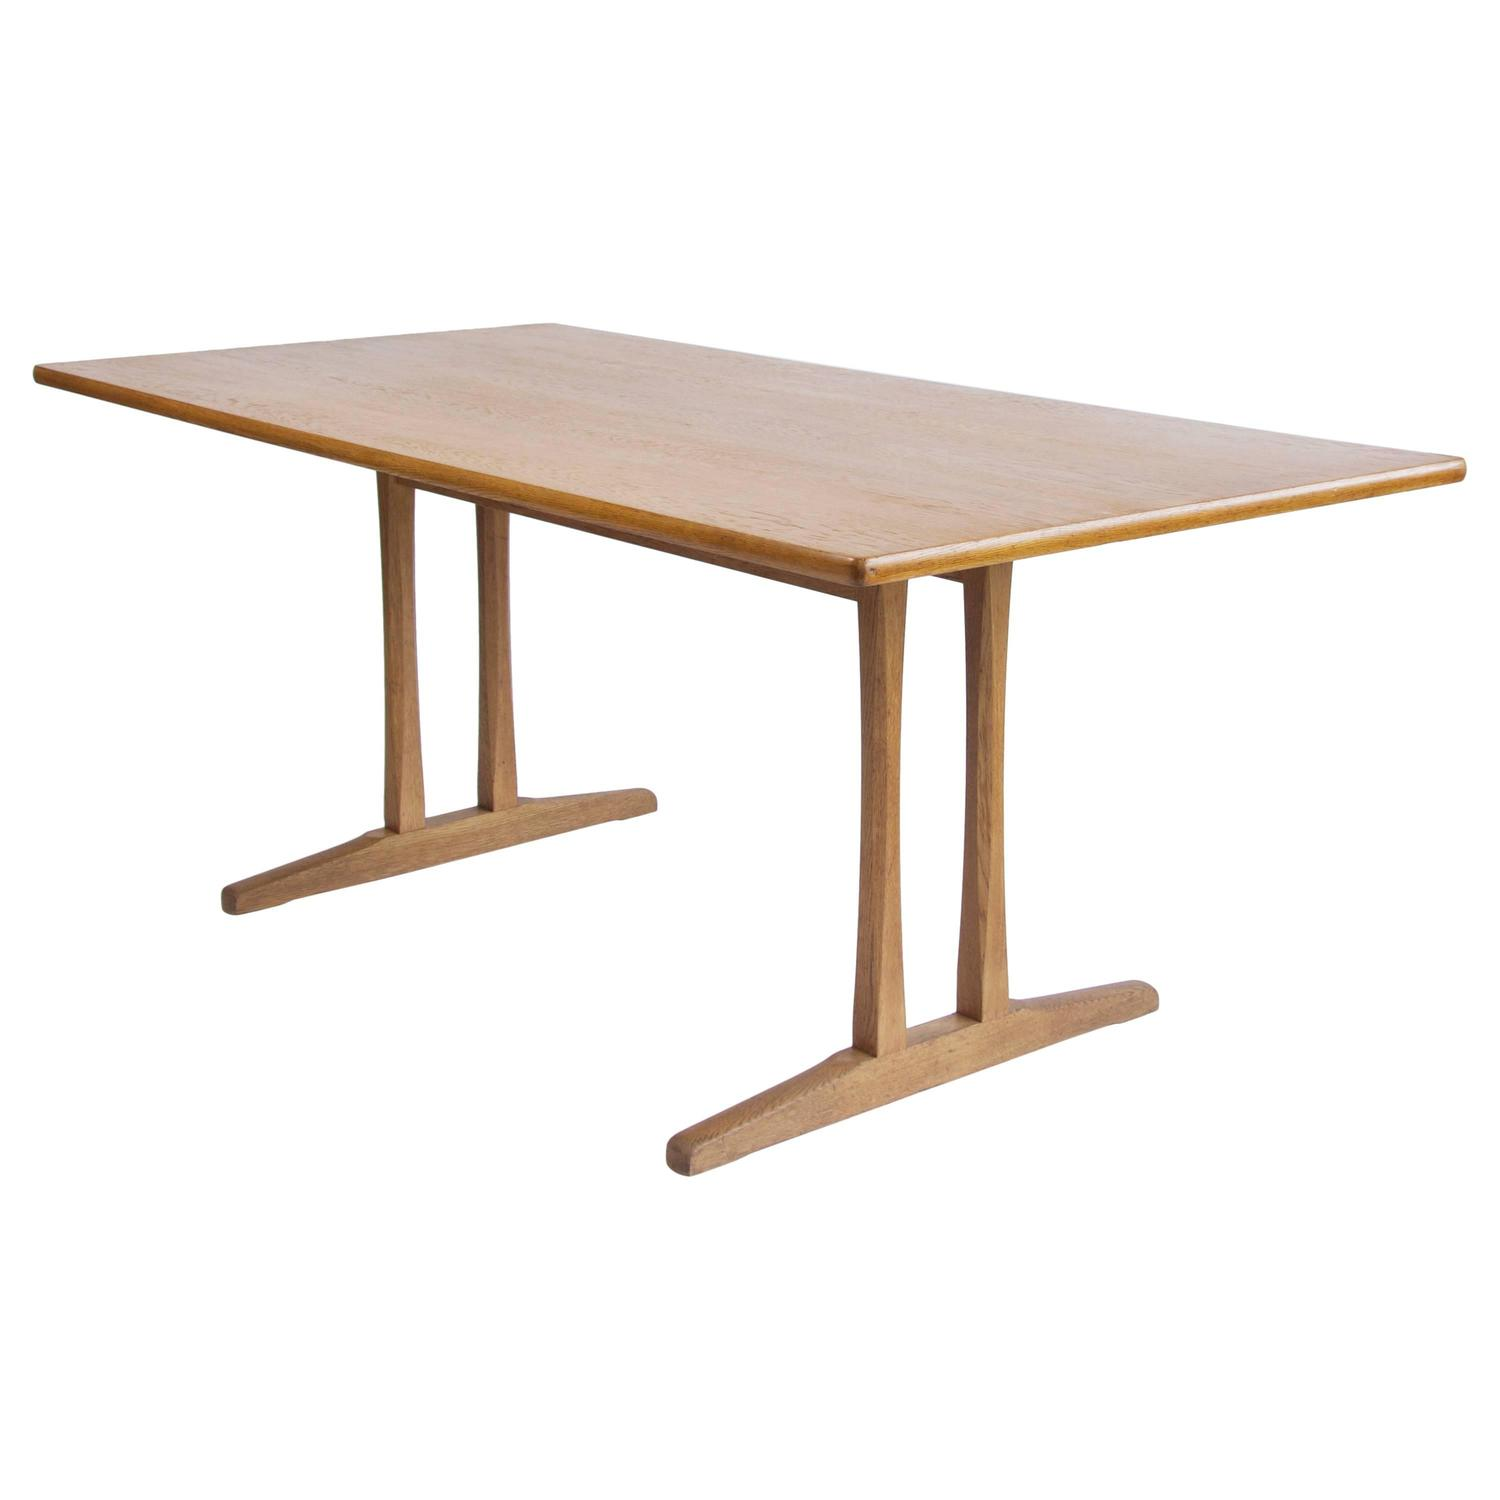 Shaker Table C18 By Borge Mogensen At 1stdibs